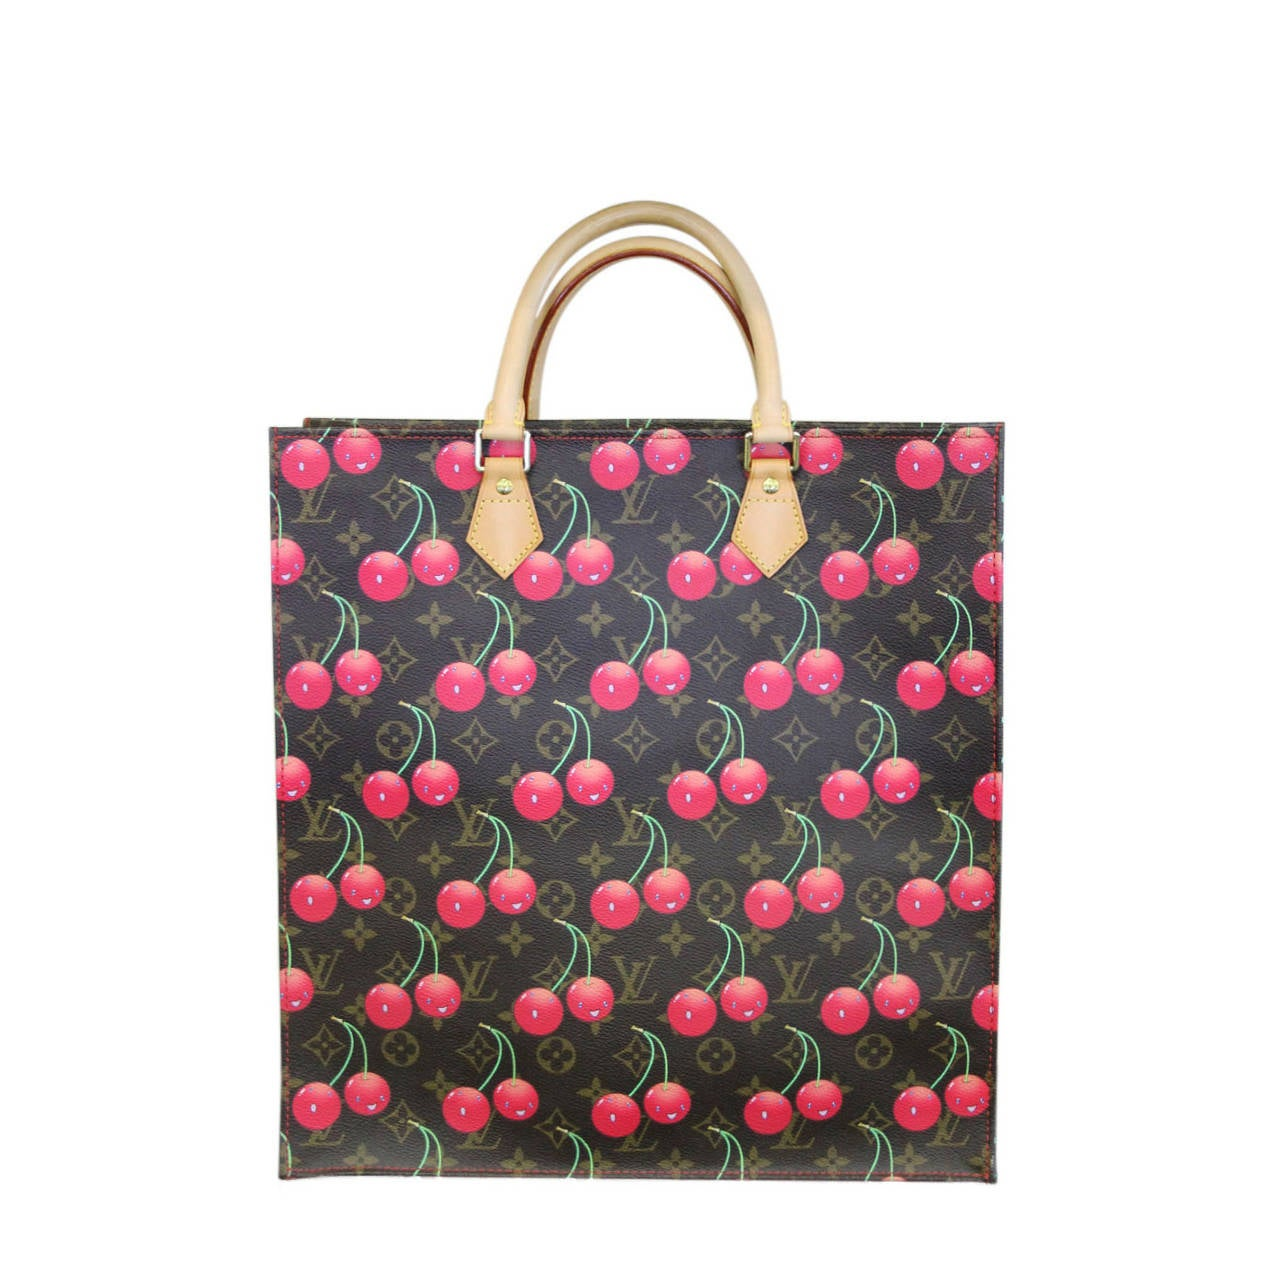 Louis Vuitton Cherry Sac Plat Cerises Canvas Tote Bag